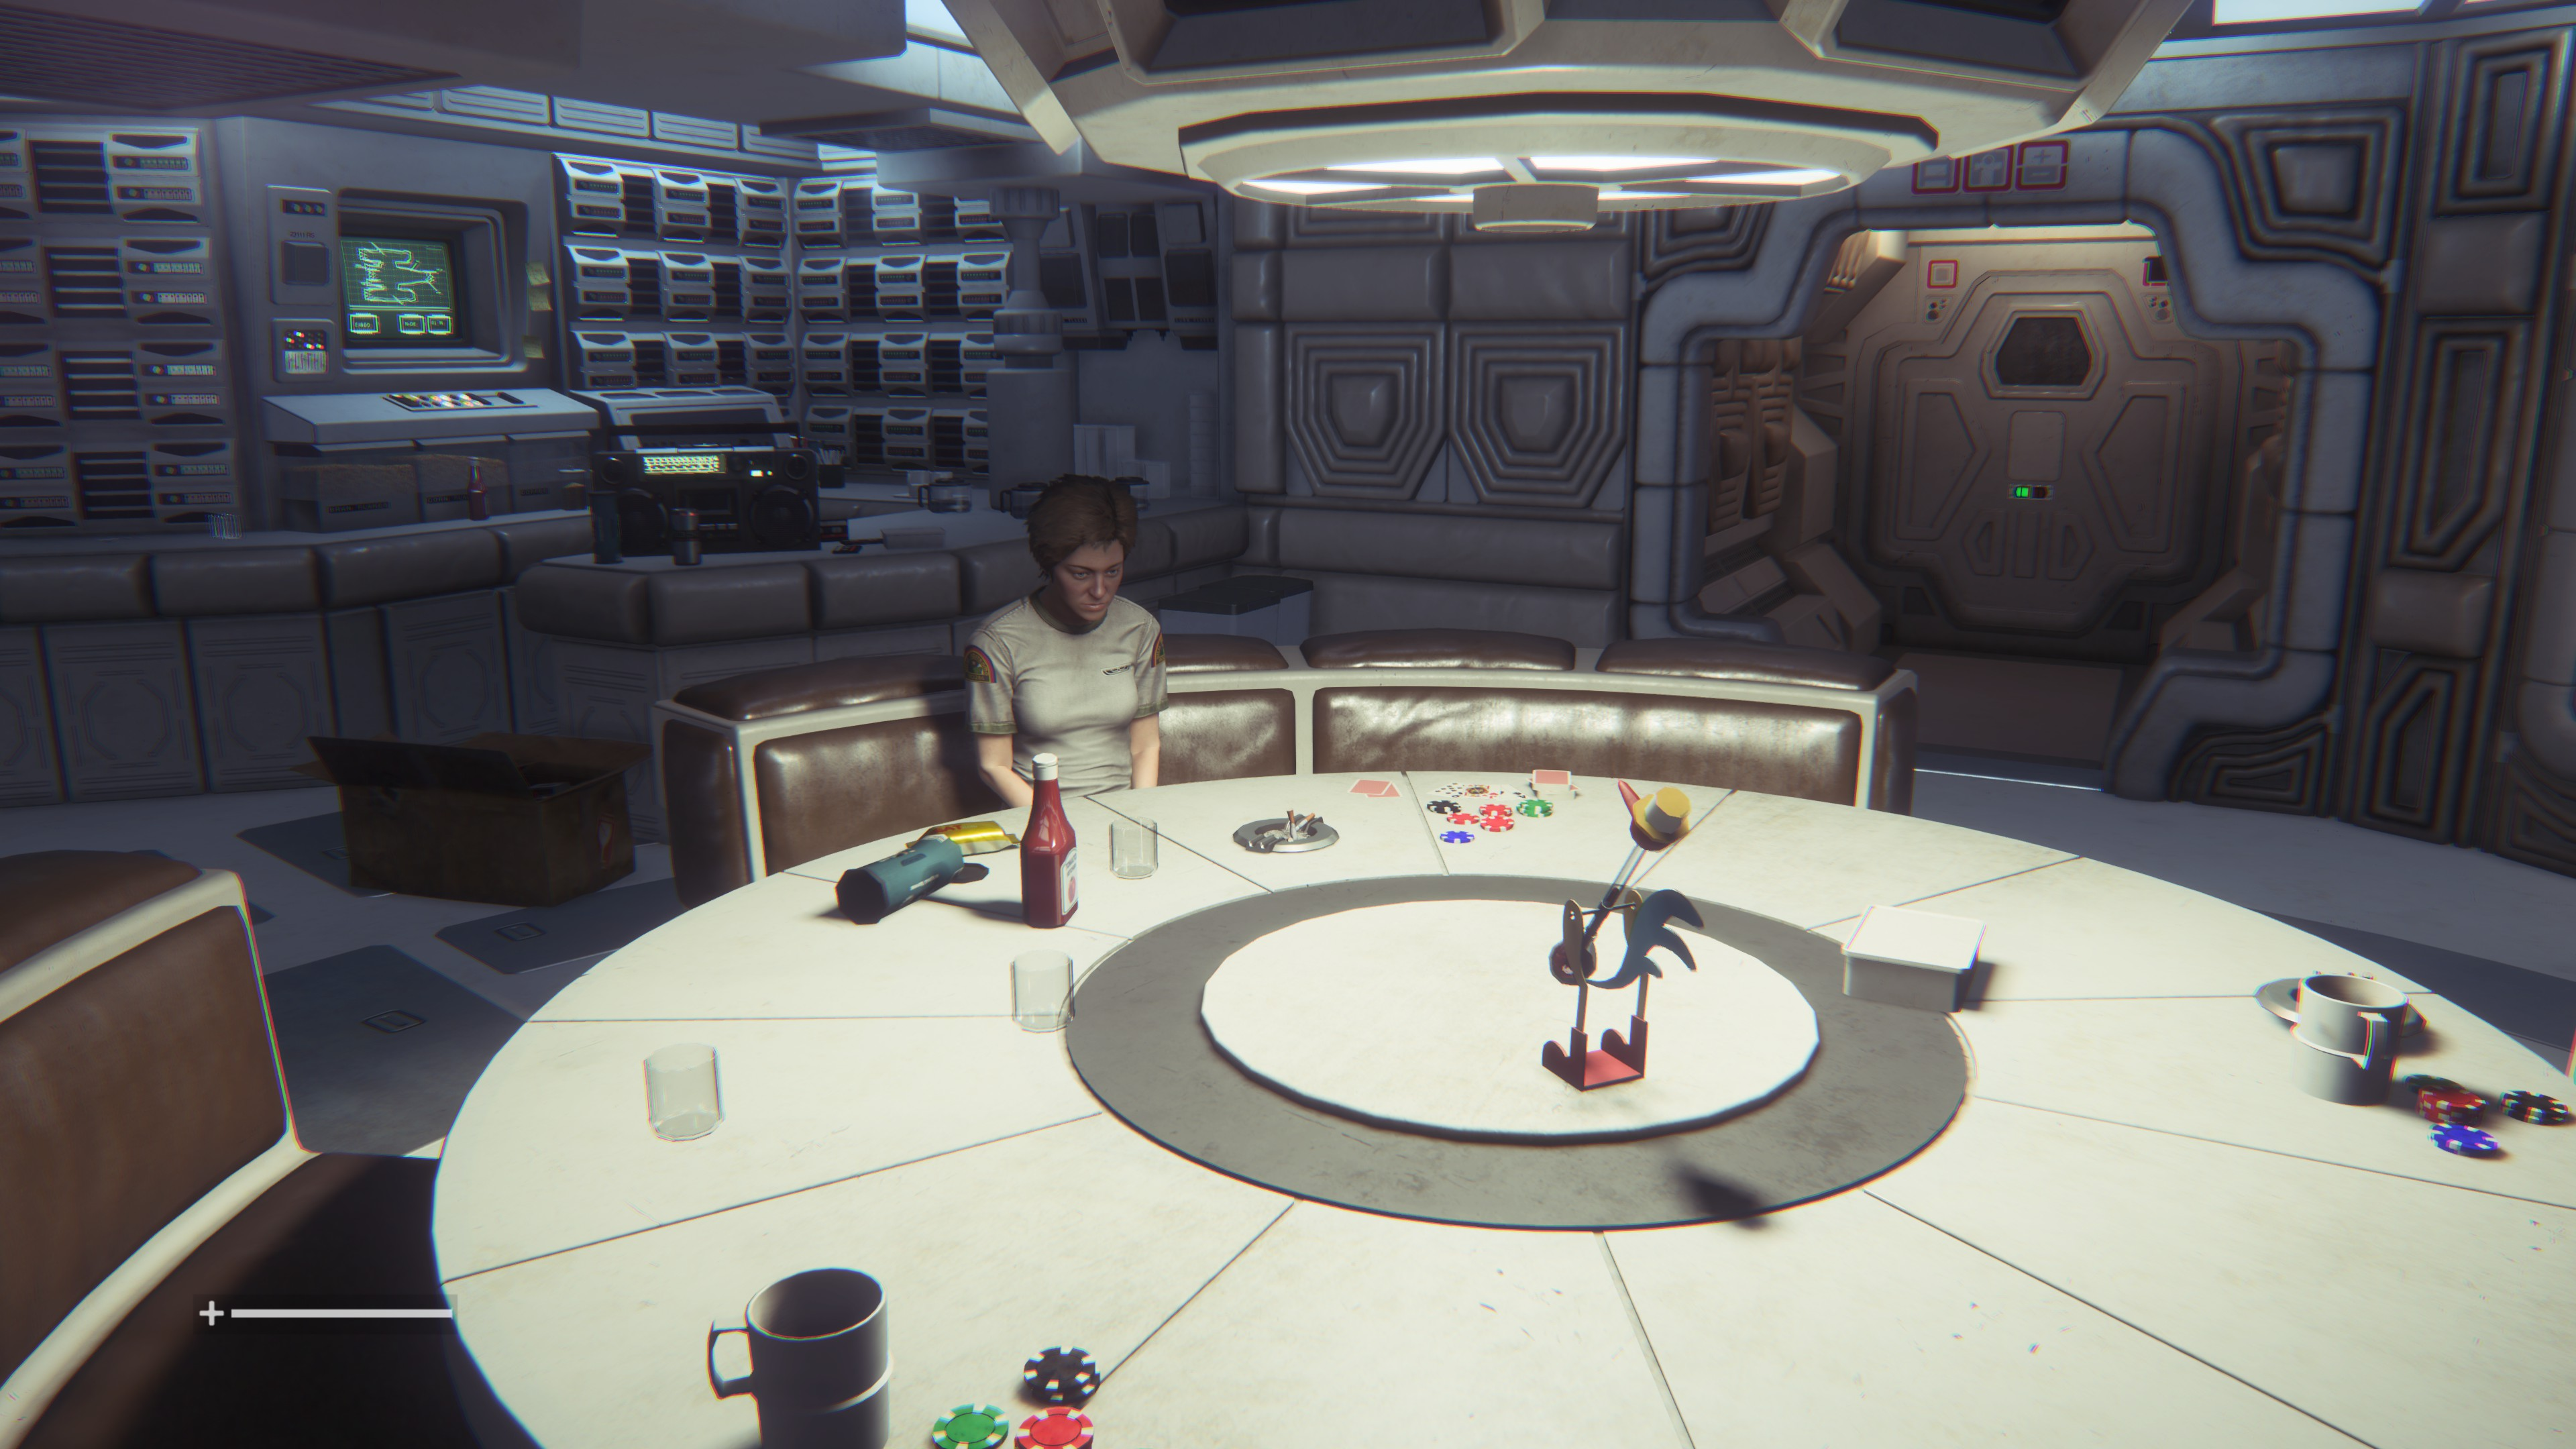 Reddit users re-enable Alien: Isolation's VR mode with unofficial